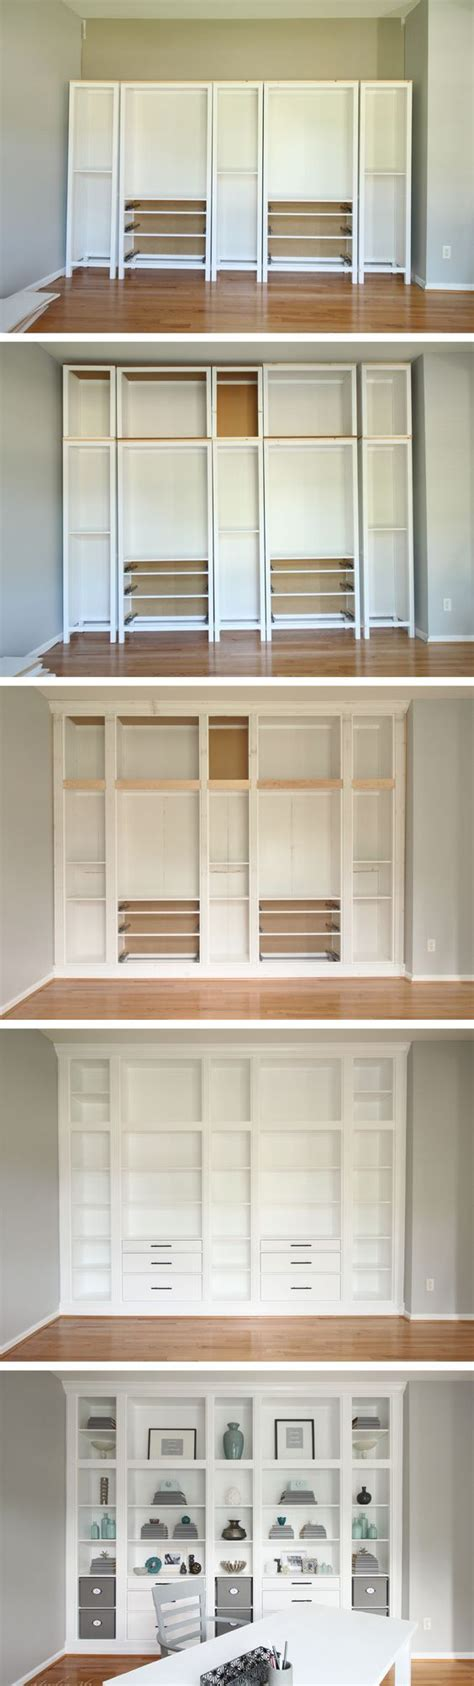 Diy Built In Bookcases Made With Ikea Hemnes Furniture Diy Custom Bookshelves